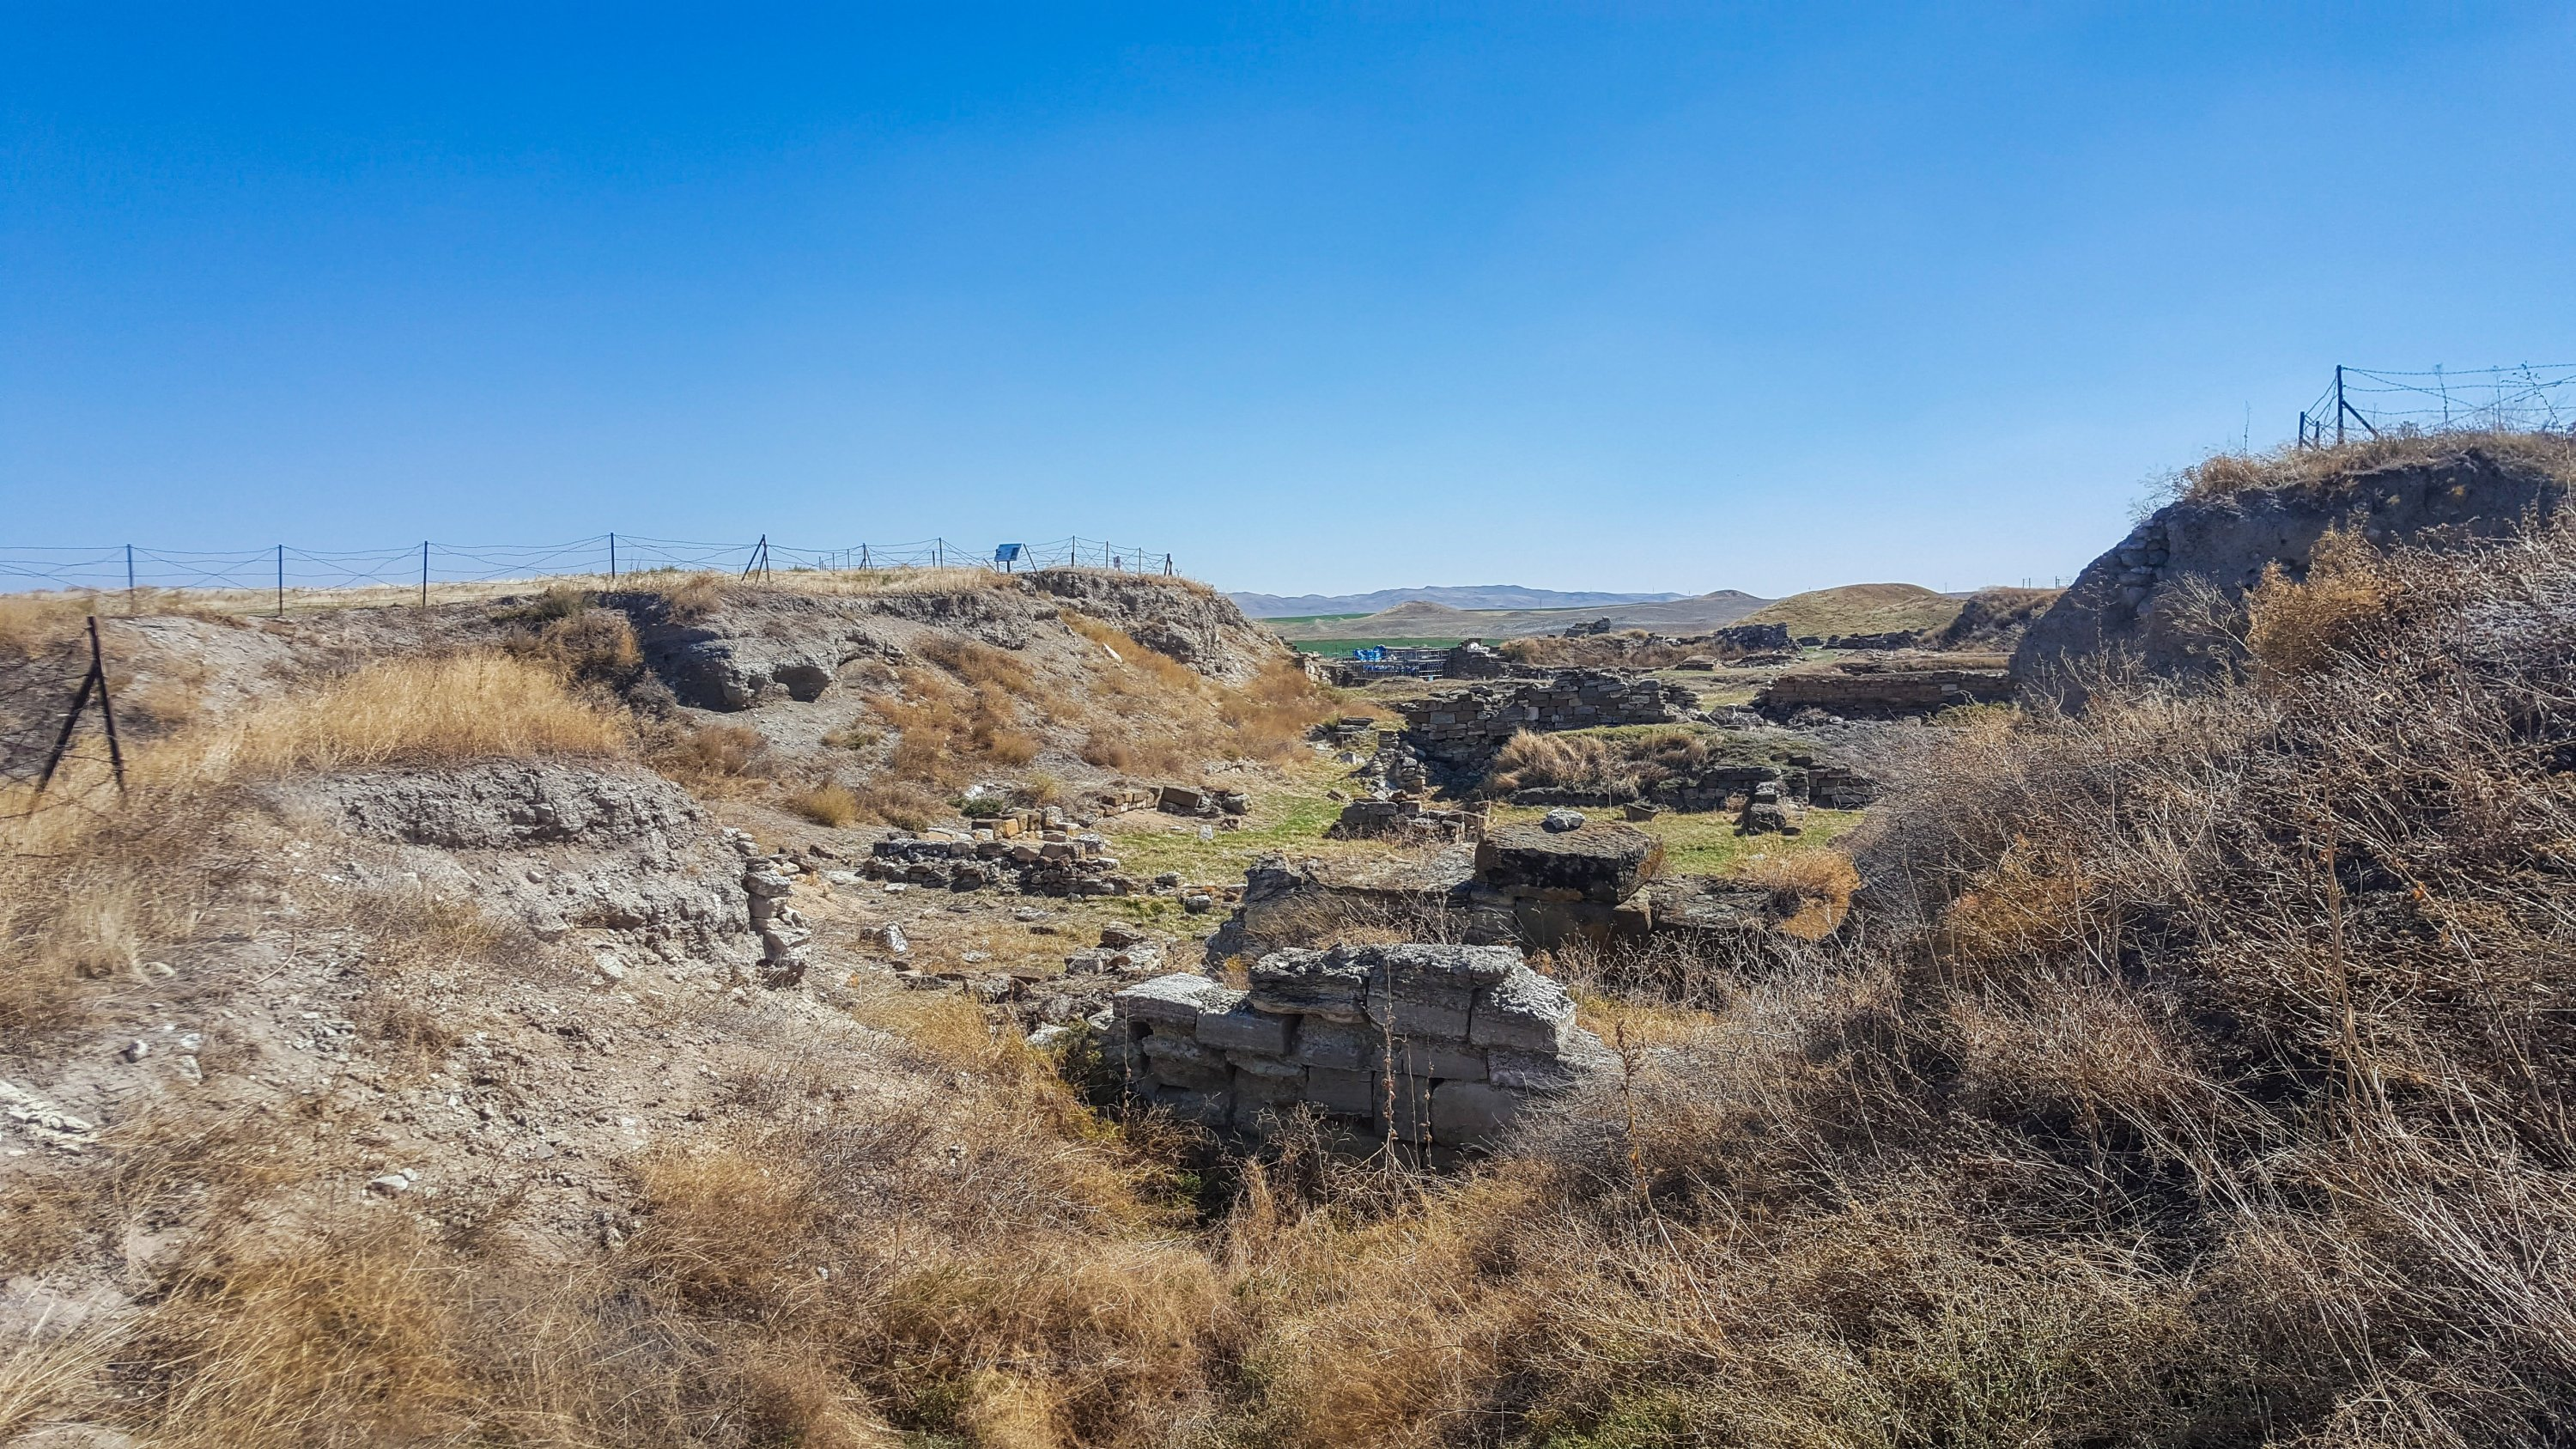 A general view of the ancient city of Gordion. (Photo by Argun Konuk)